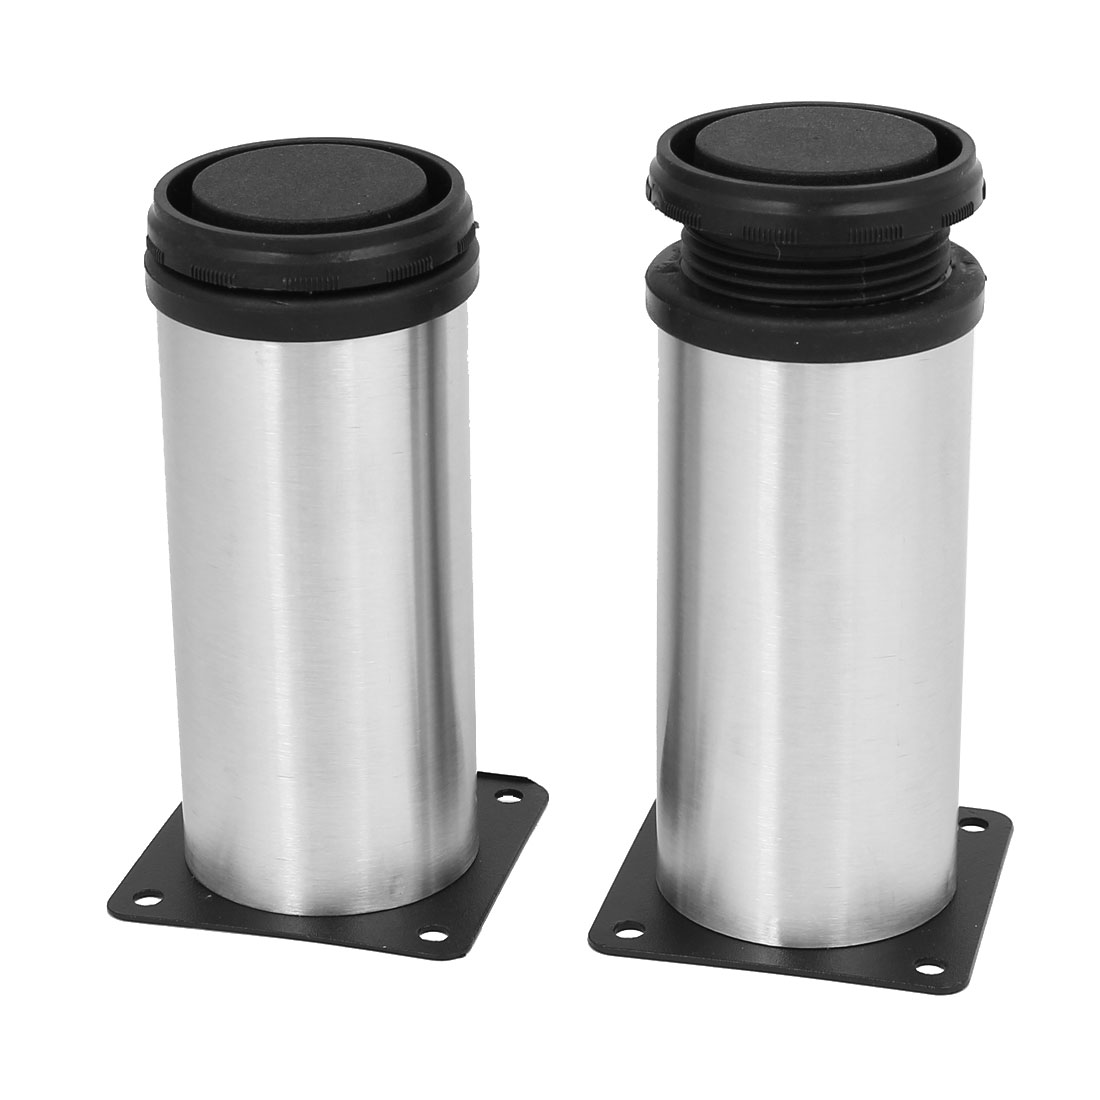 120mm Height Stainless Steel Square Shape Base Adjustable Cabinet Leg Feet 2pcs